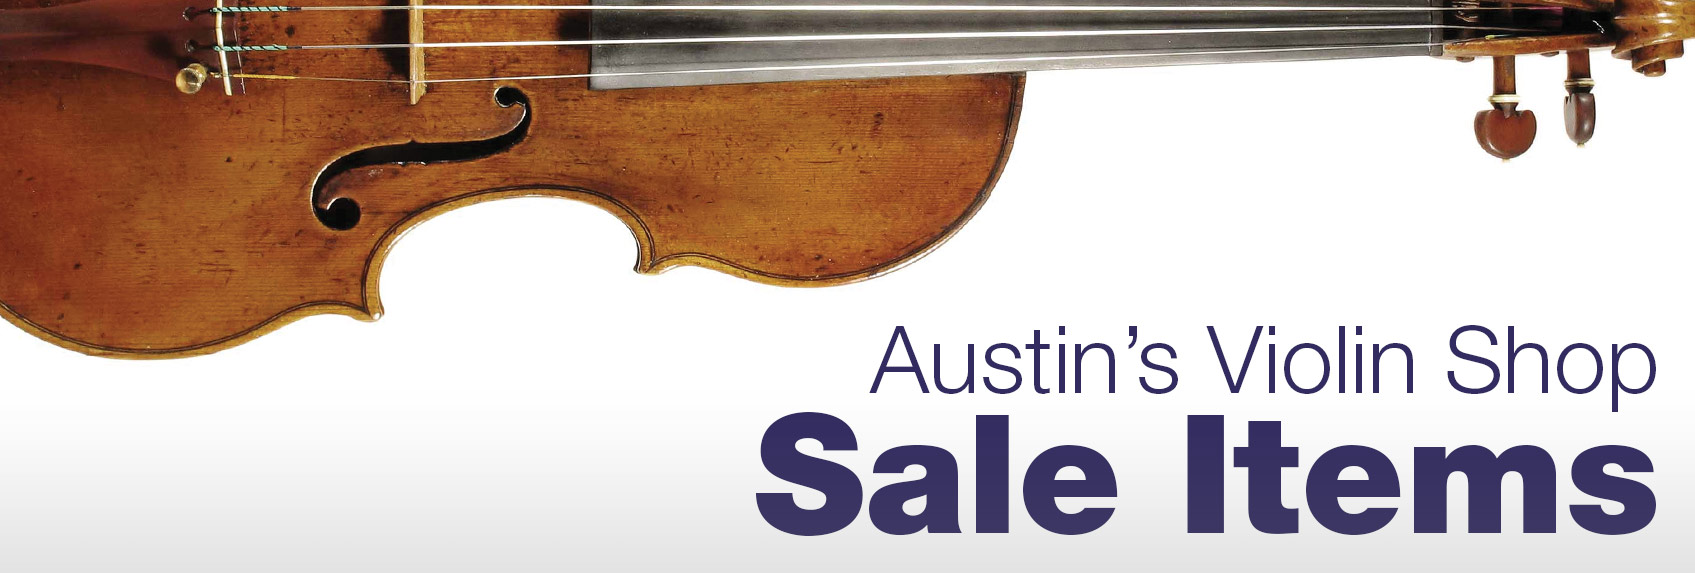 Sale Items Austins Violin Shop